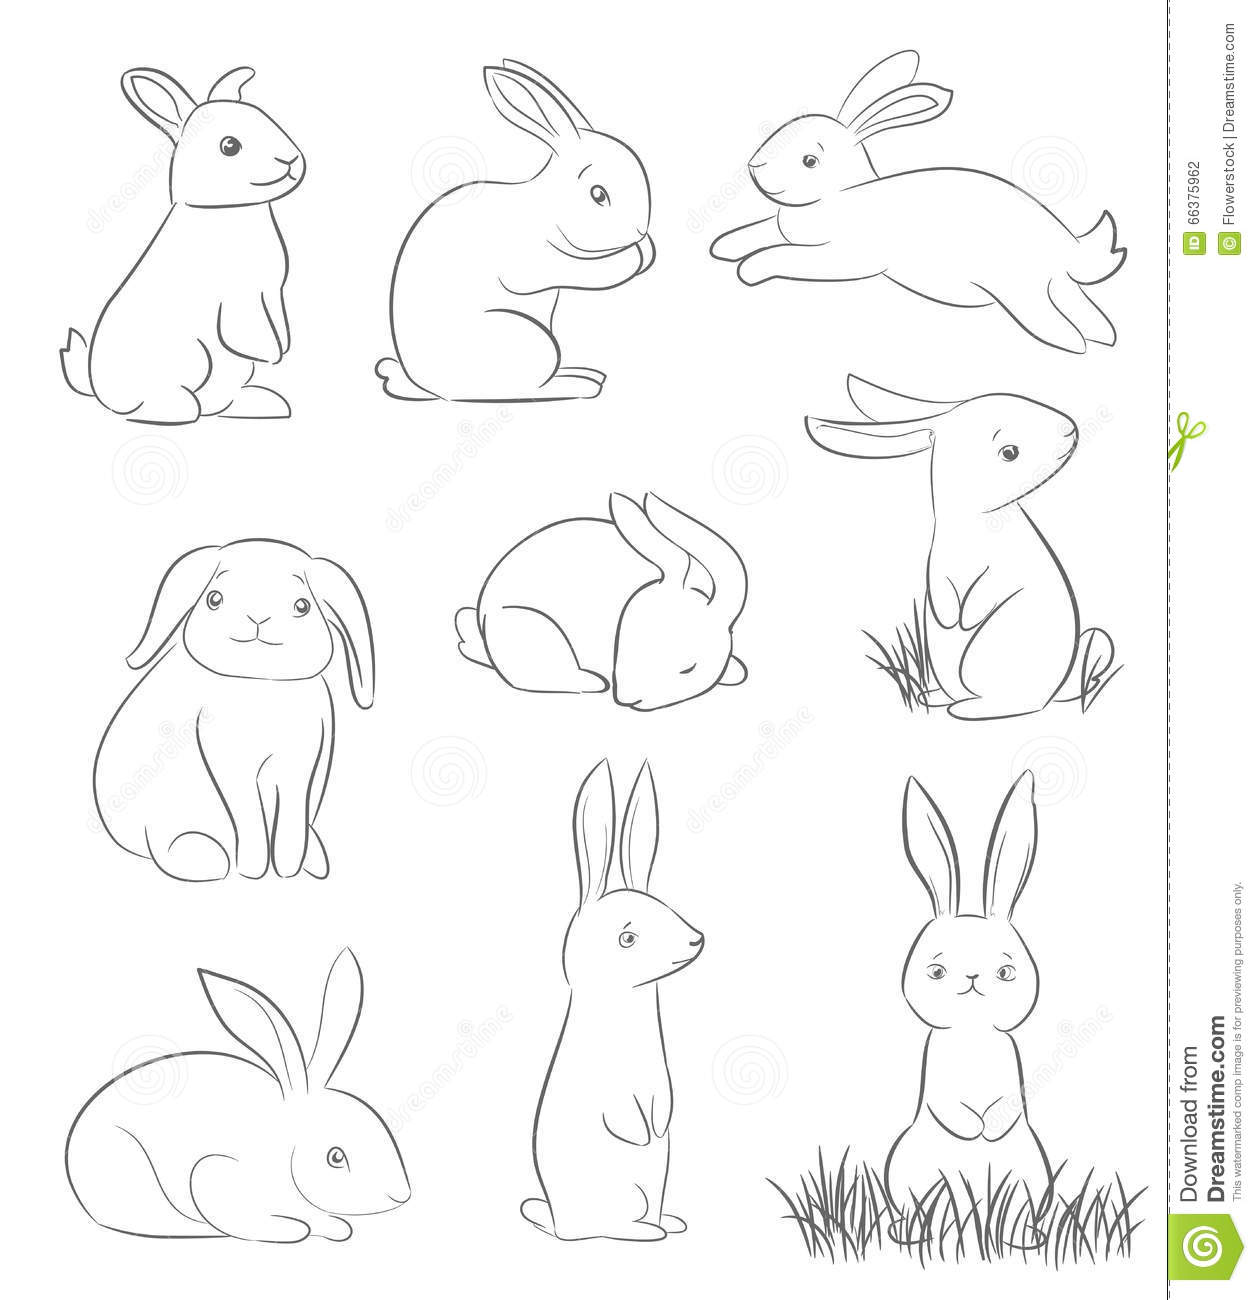 Set Of Cute Cartoon Rabbits Stock Vector - Illustration Of Cute Illustration 66375962